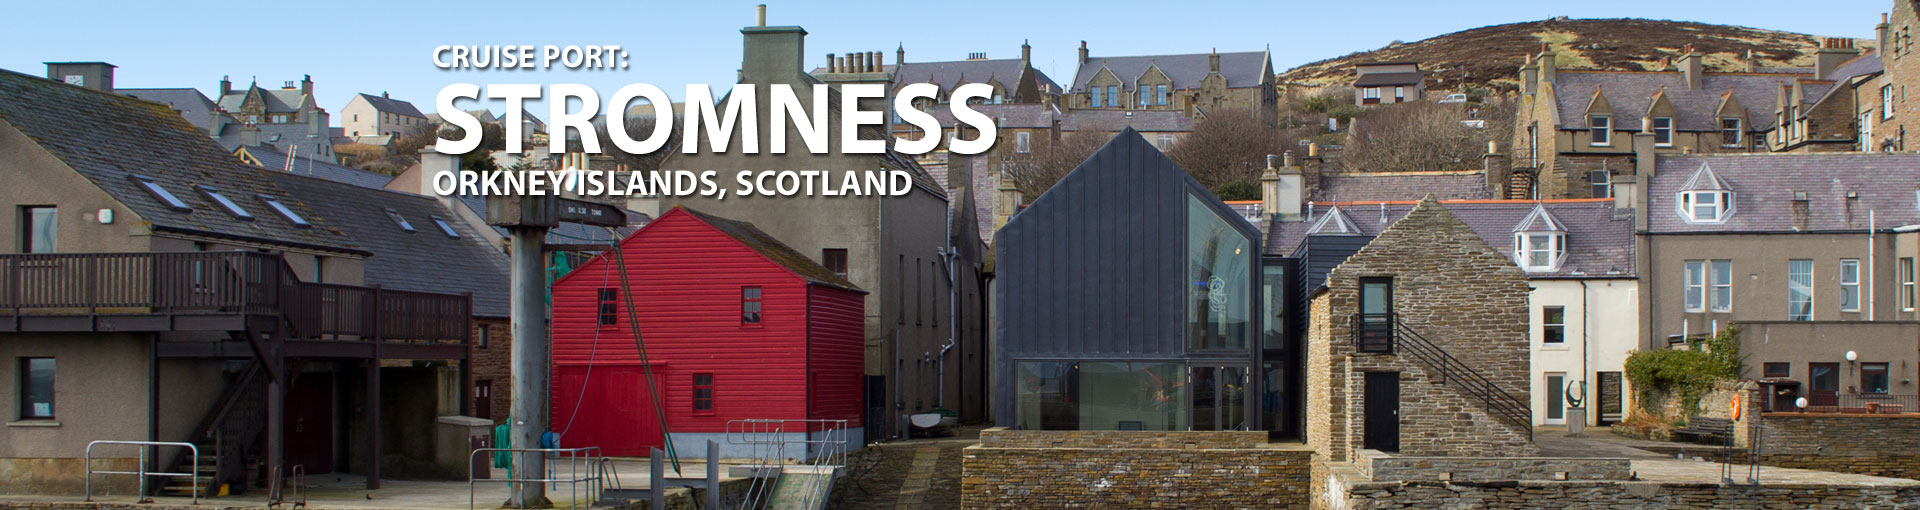 Cruises to Stromness, Orkney Islands